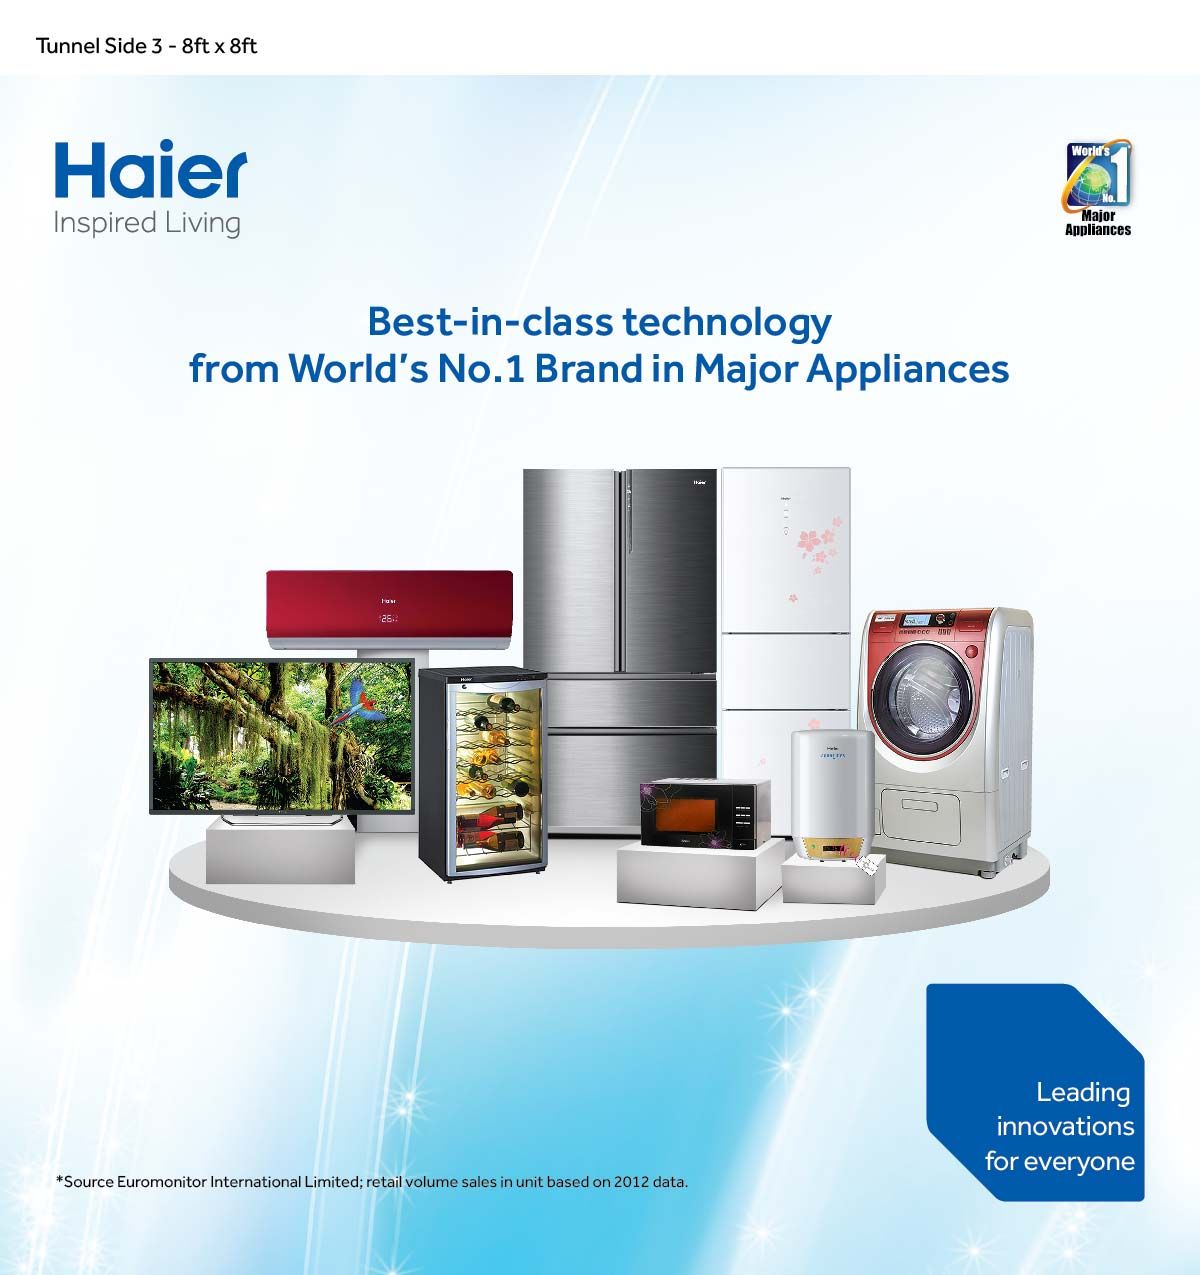 Haier India's Wide Product Range of Home/Major Appliances